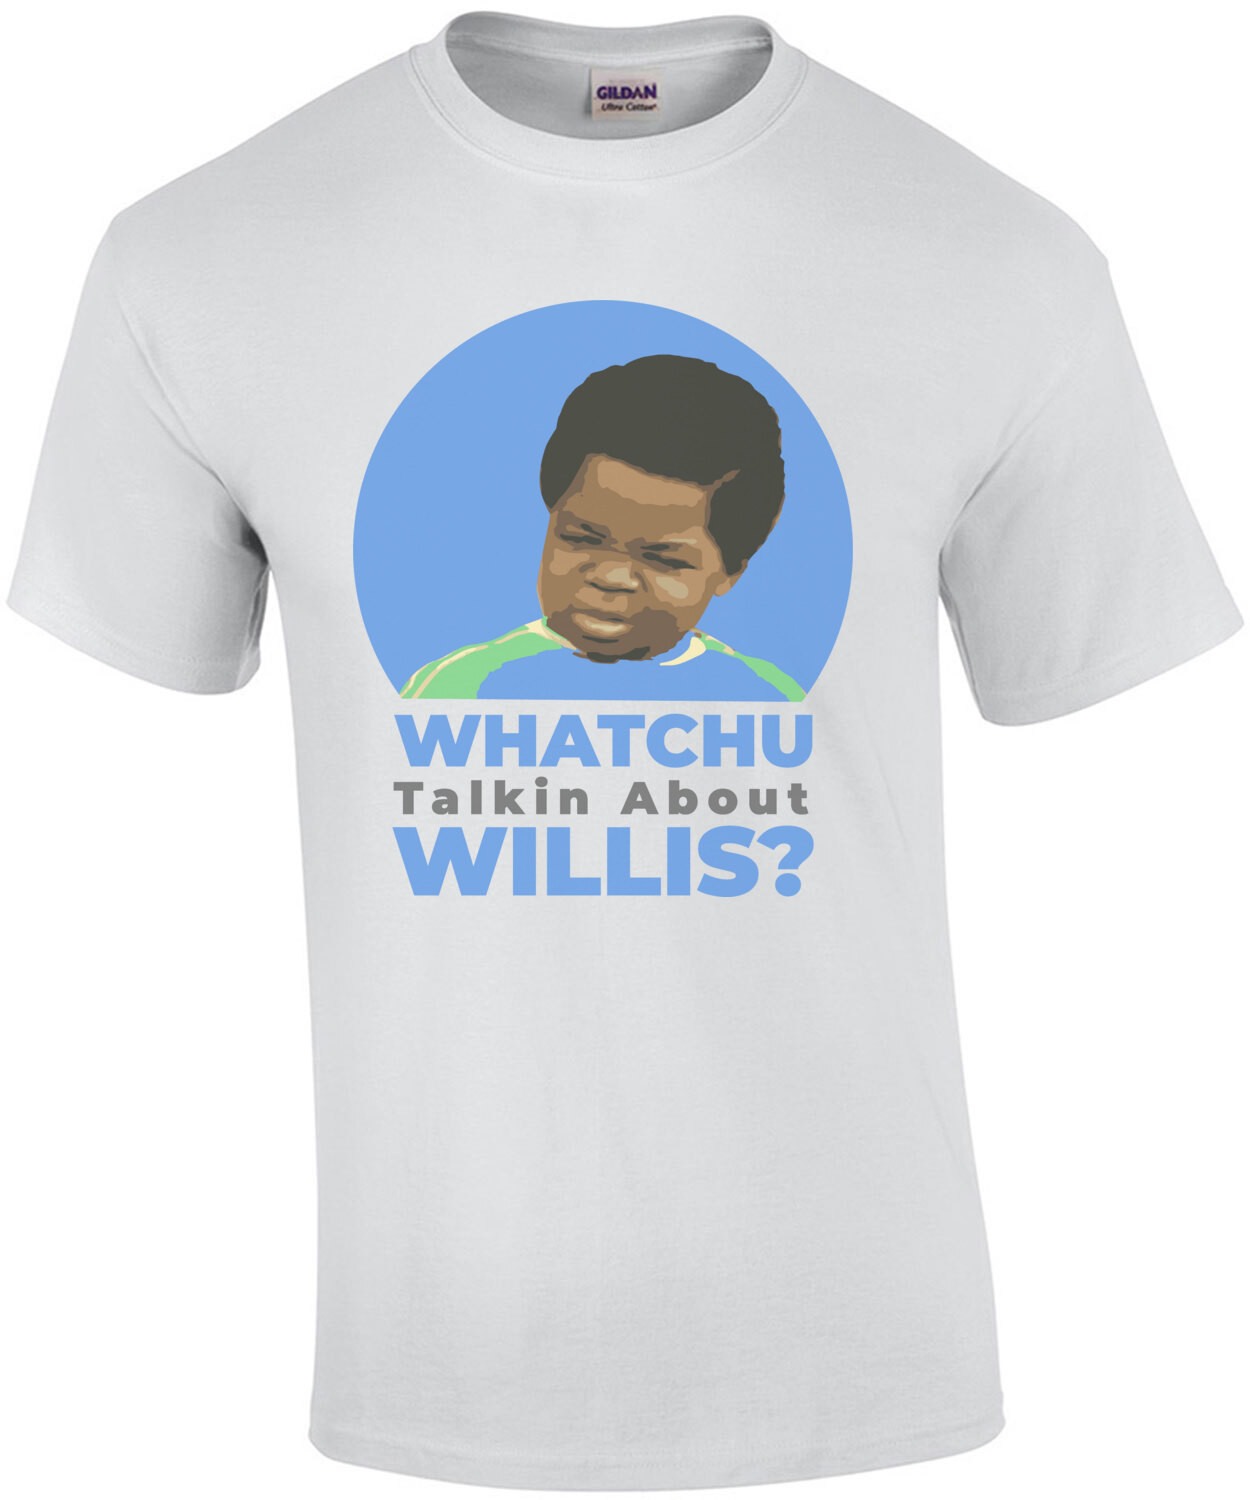 Whatchu talkin about Willis - Diff'rent Strokes - 80's T-Shirt